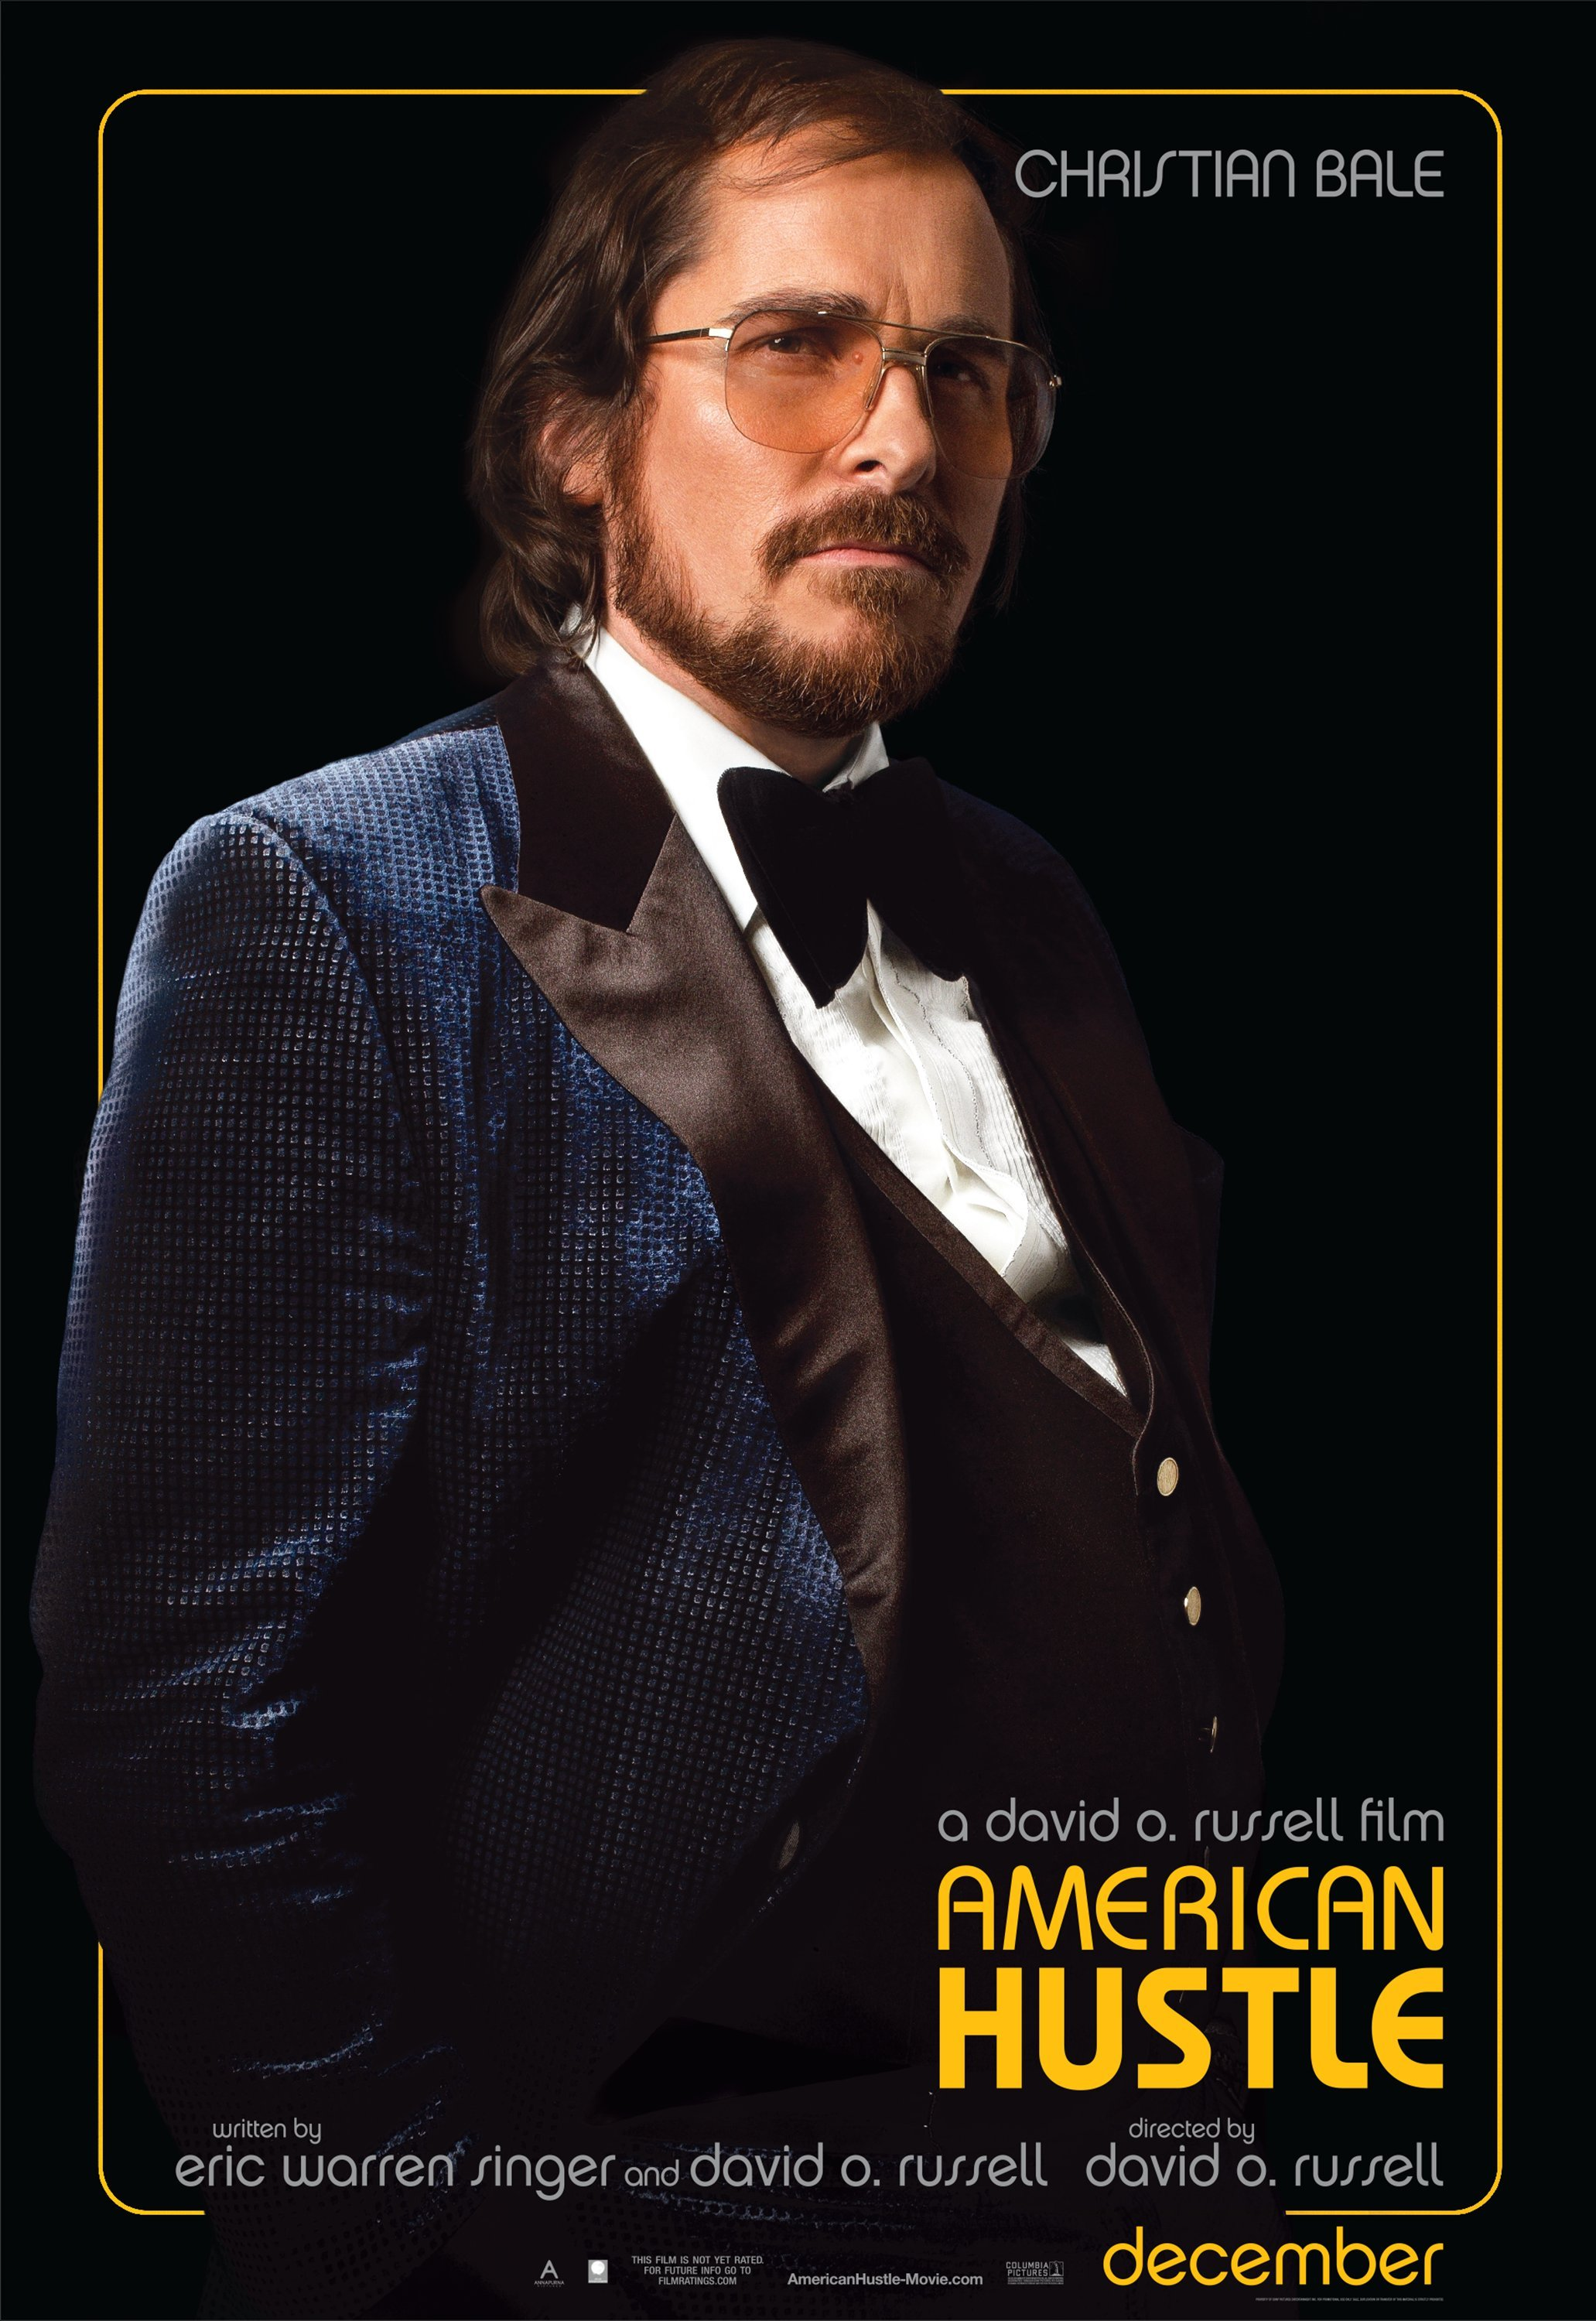 'American Hustle' Posters Reveal Vintage Looks From ...